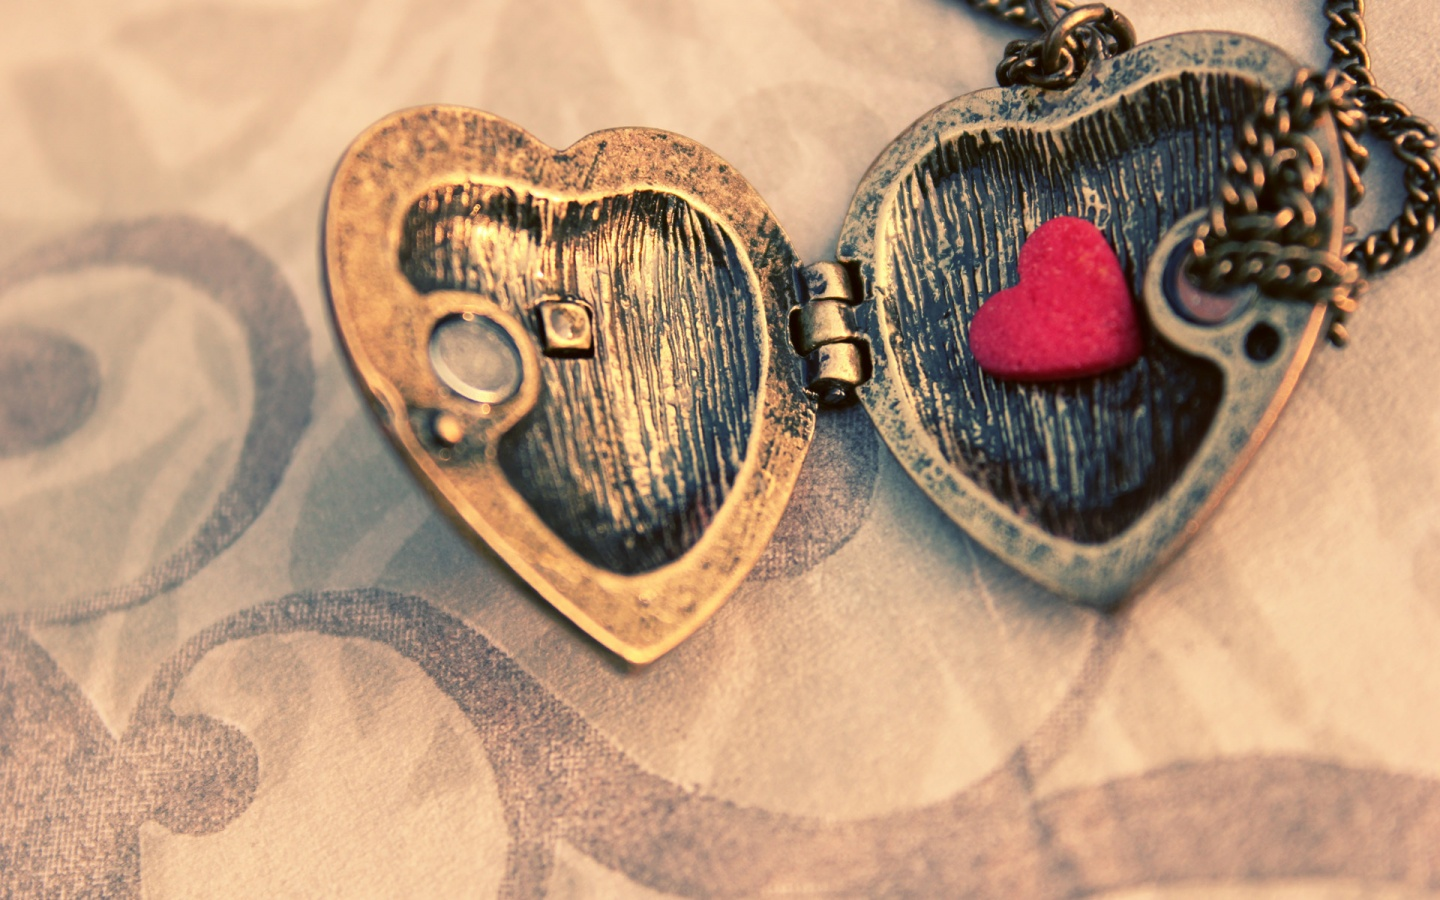 Love Locket Wallpaper : ??? ??? ??? - ??? ??? ??? ????? ??????? ?? ????? HD